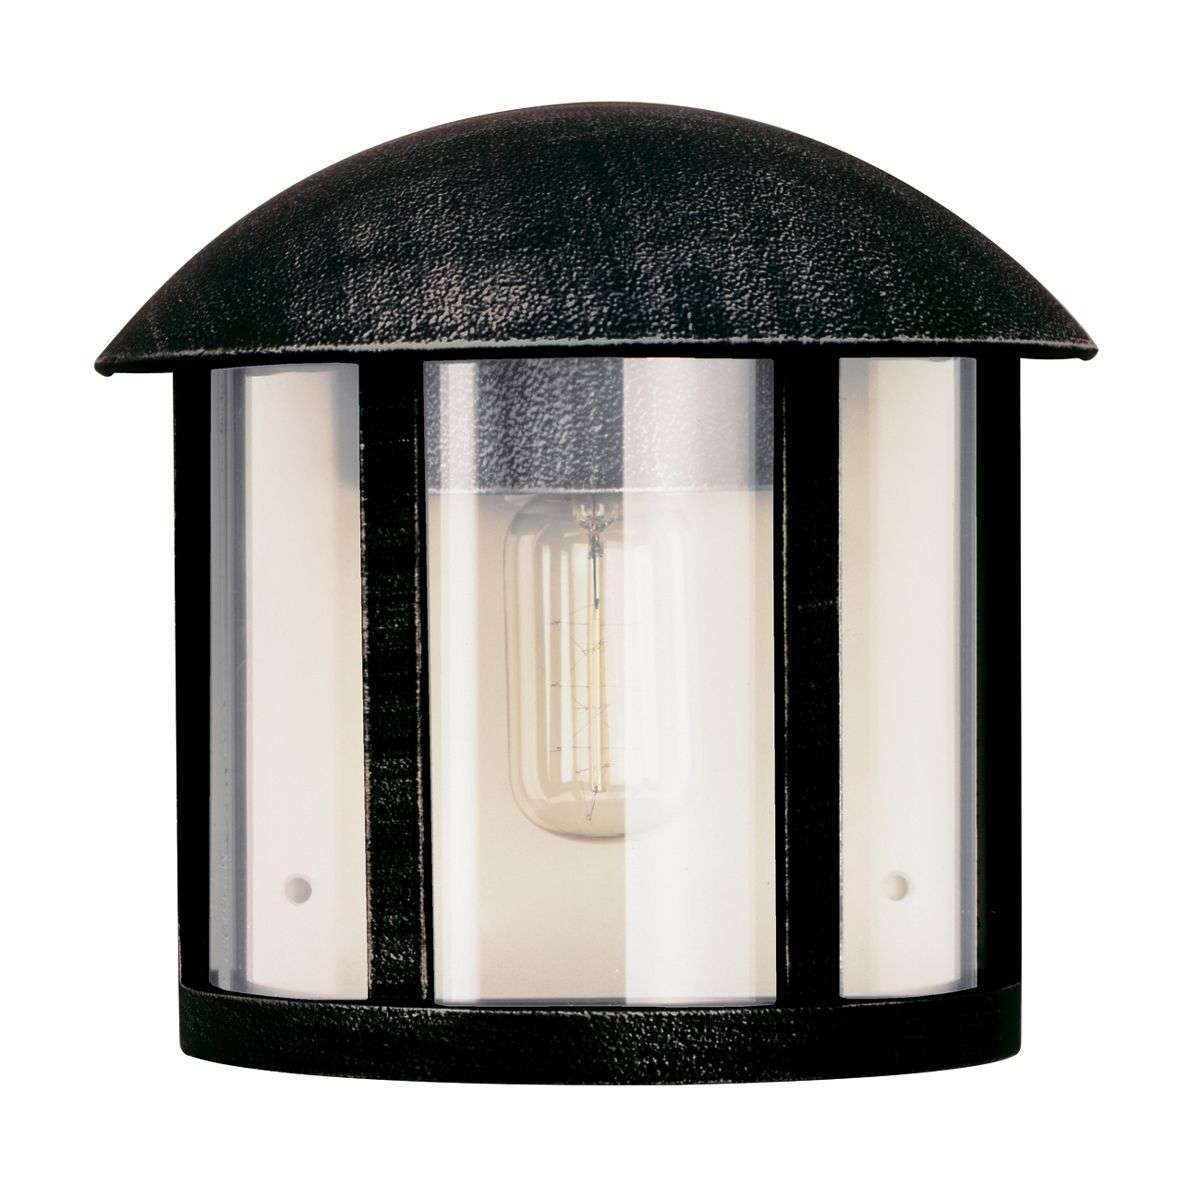 b03f699e916 Gerlin outdoor wall light in country house style